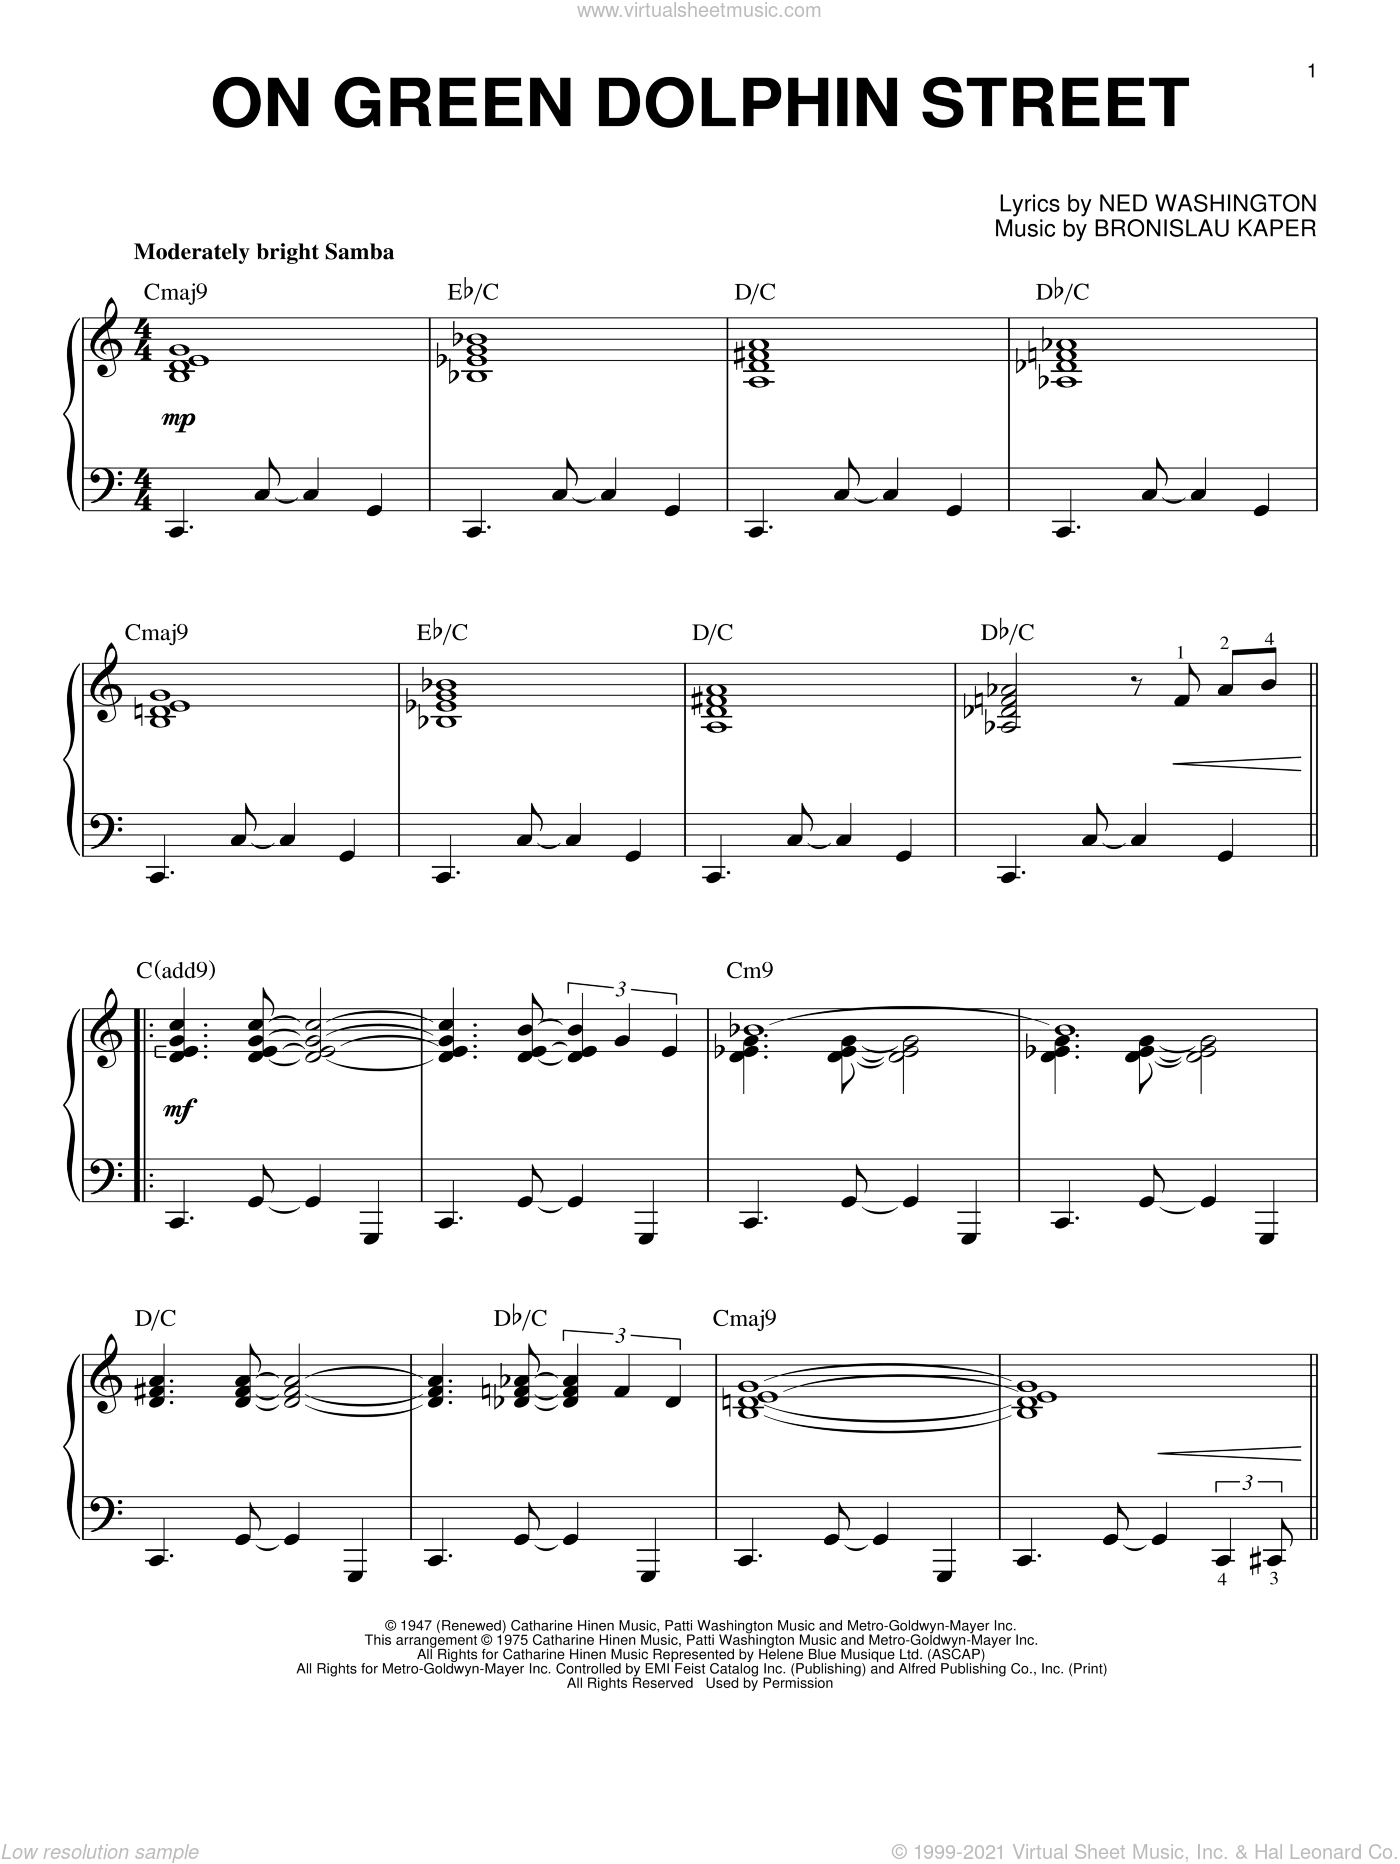 On Green Dolphin Street sheet music for piano solo by Miles Davis, Bill Evans, Bronislau Kaper and Ned Washington, intermediate